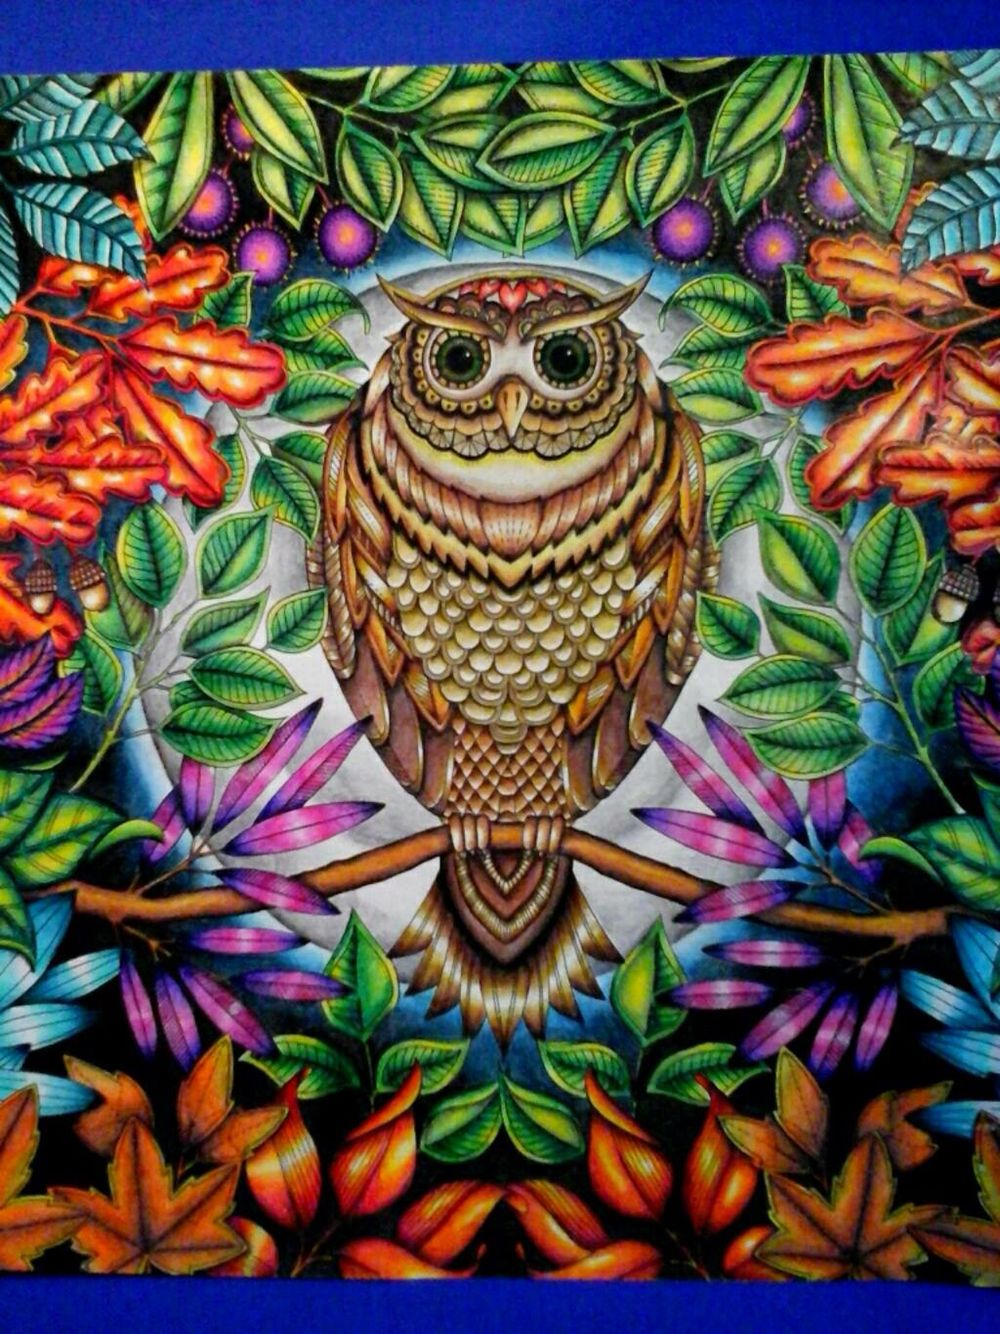 Owl Secret Garden Coruja Jardim Secreto Johanna Basford Secret Garden Colouring Basford Coloring Book Secret Garden Coloring Book